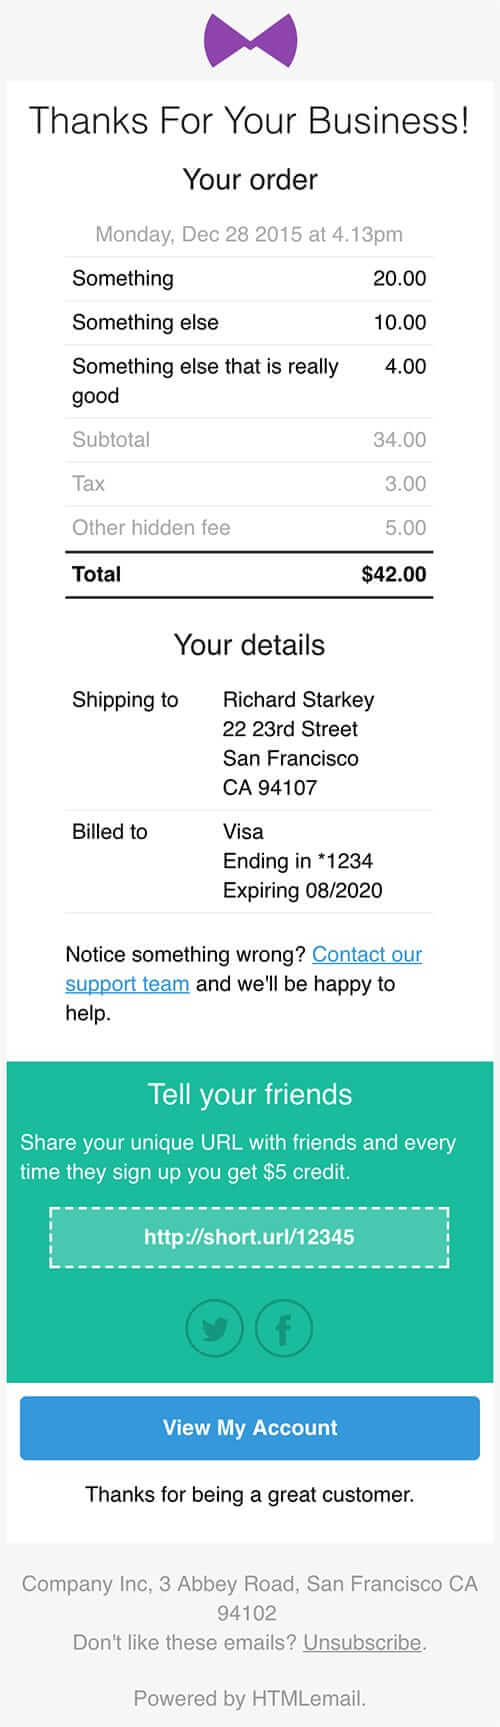 Responsive Receipt & Invoice Email Template mobile preview